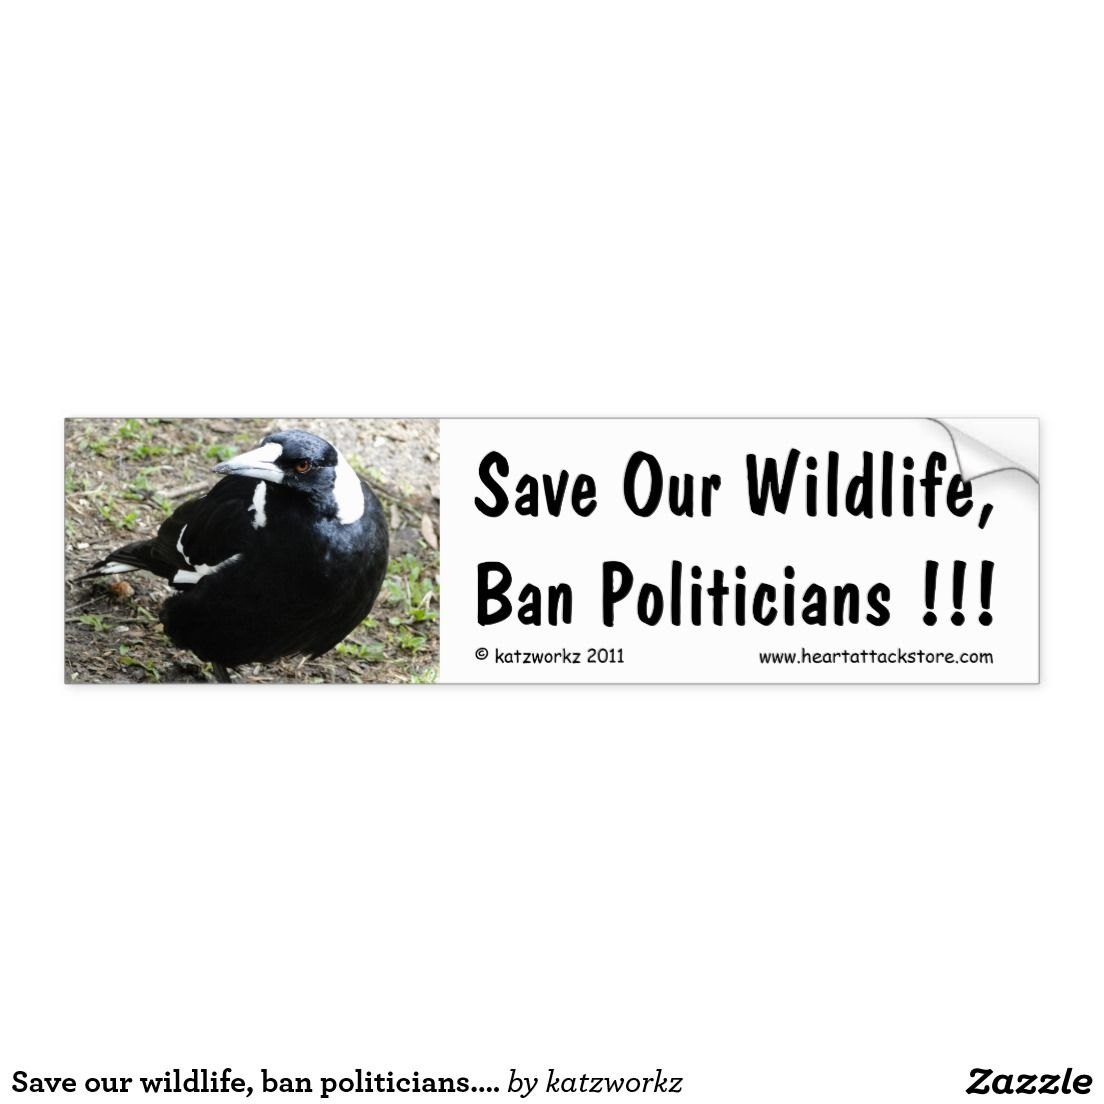 Save our wildlife, ban politicians... car bumper sticker - #cull #magpies #politicians #zazzle Click on photo to view item then click on item to see how to purchase that item.